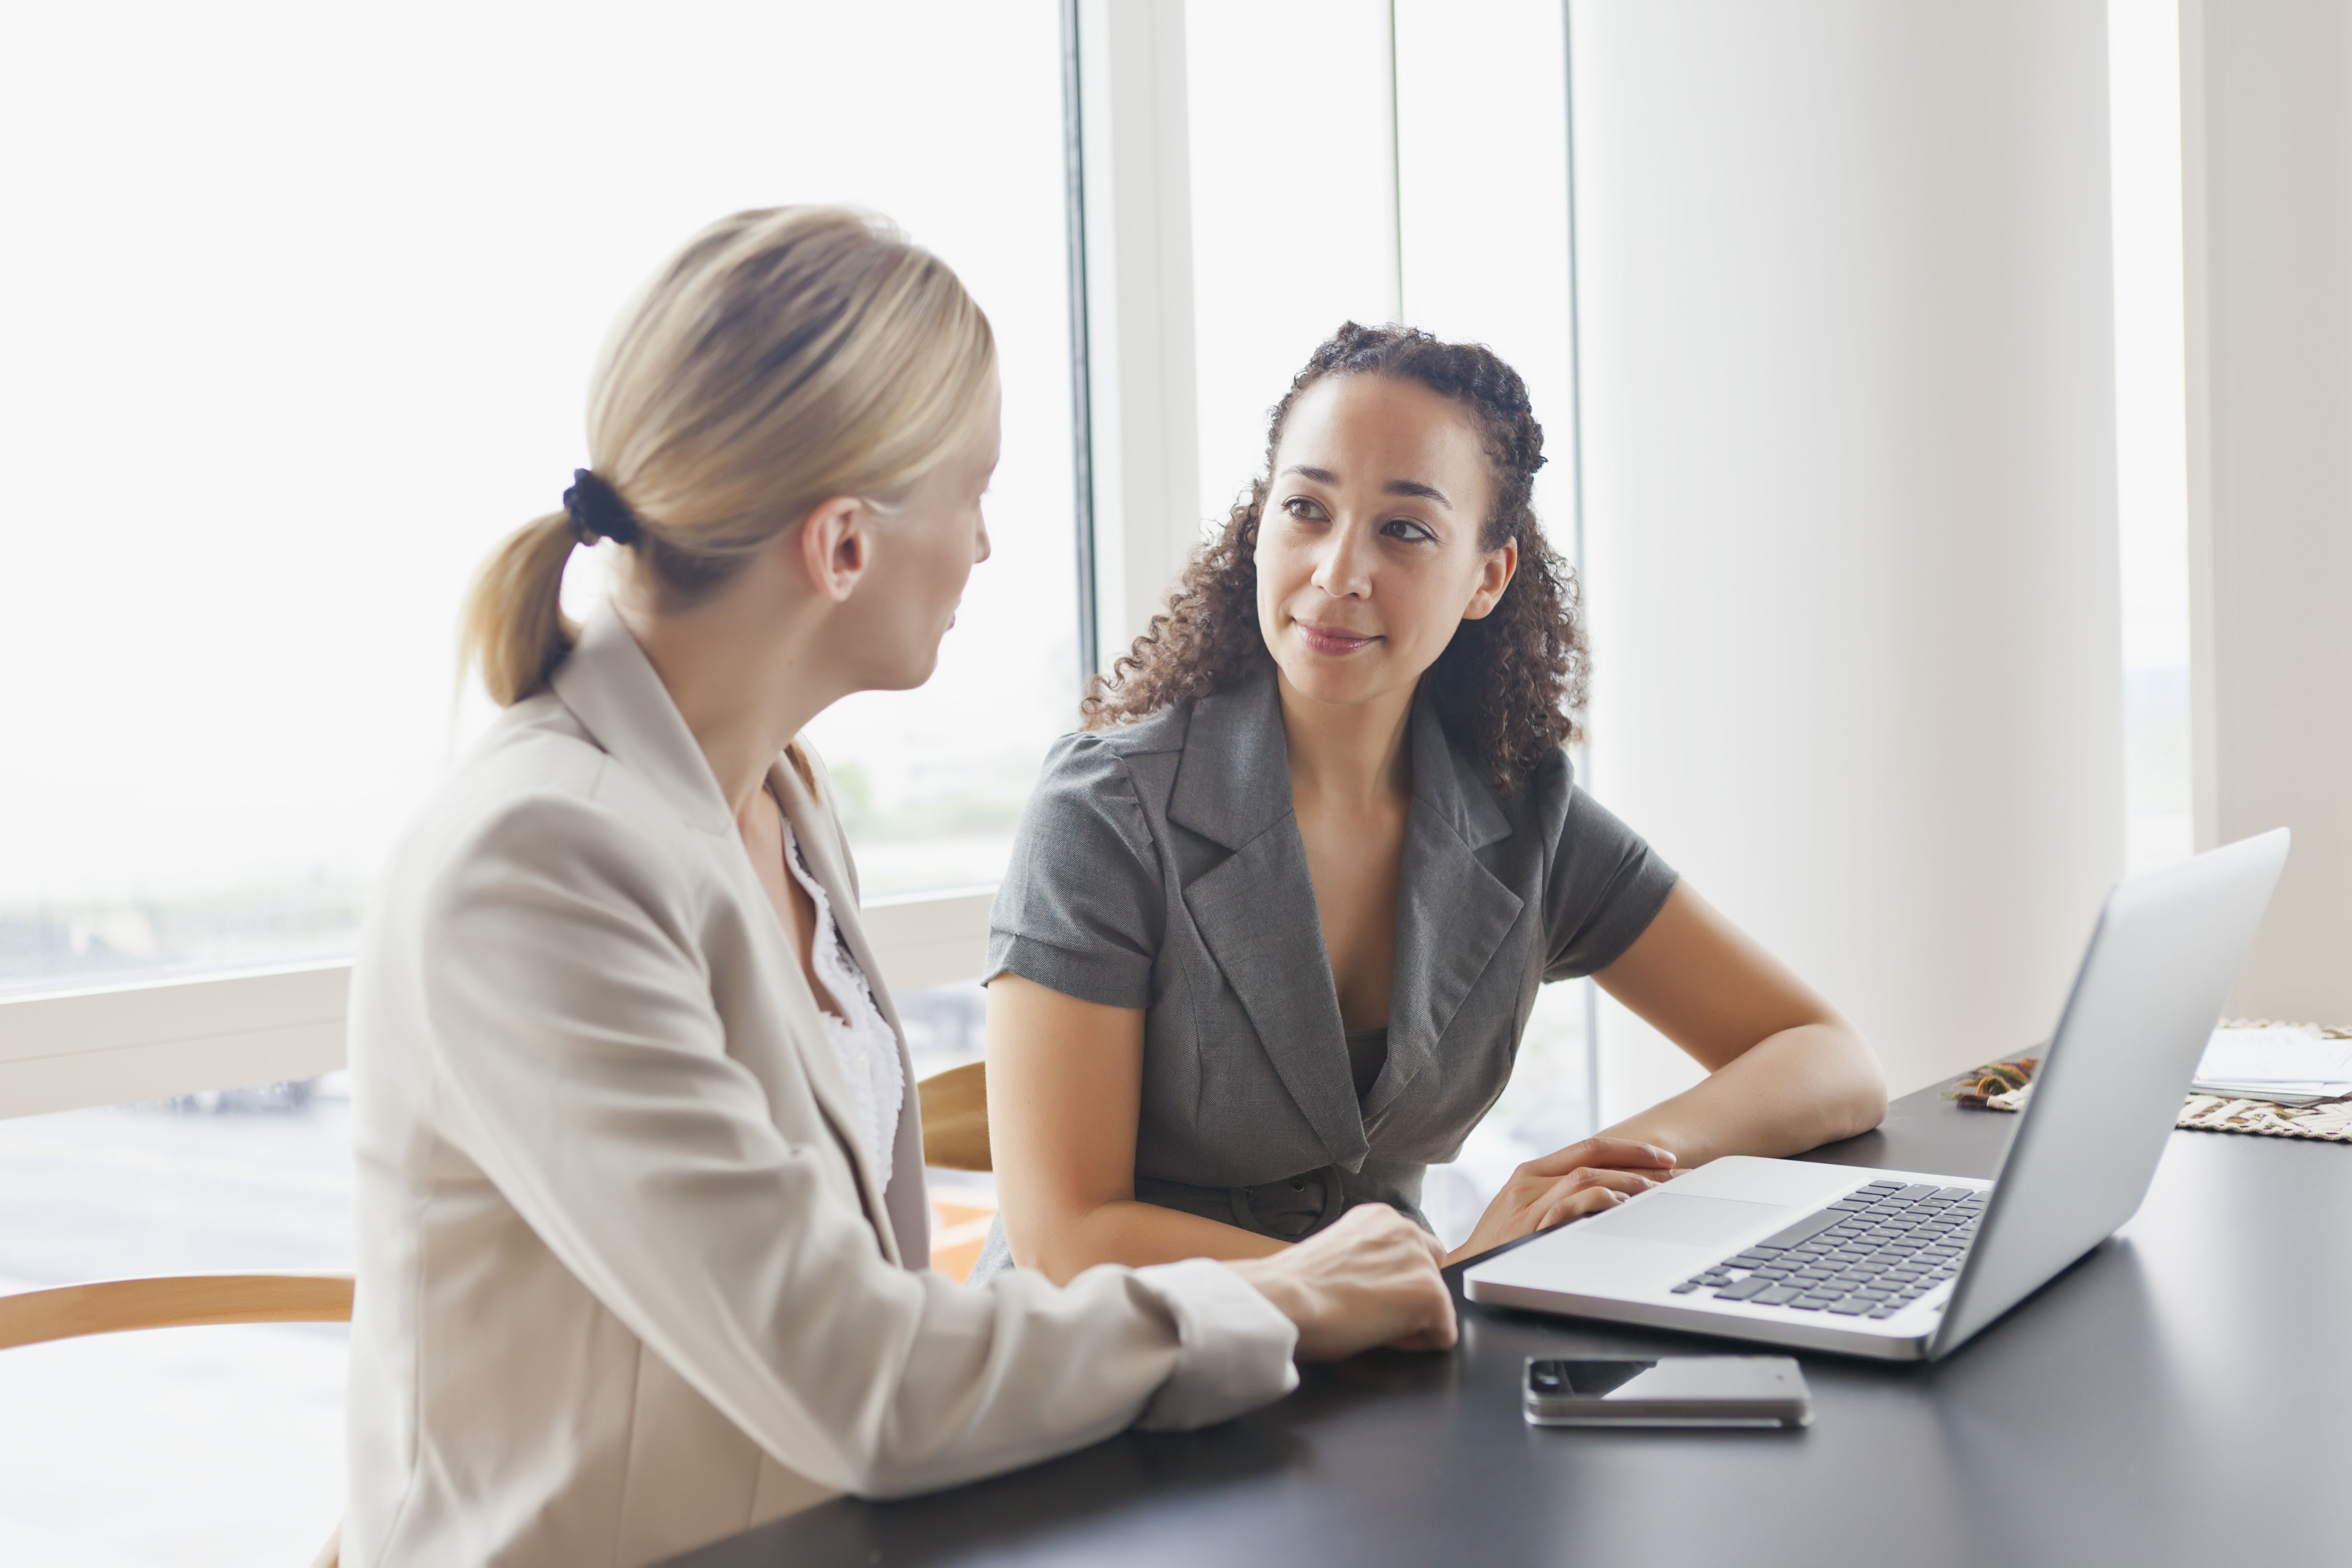 Active listening is one way you can make a potential employer want to hire you.